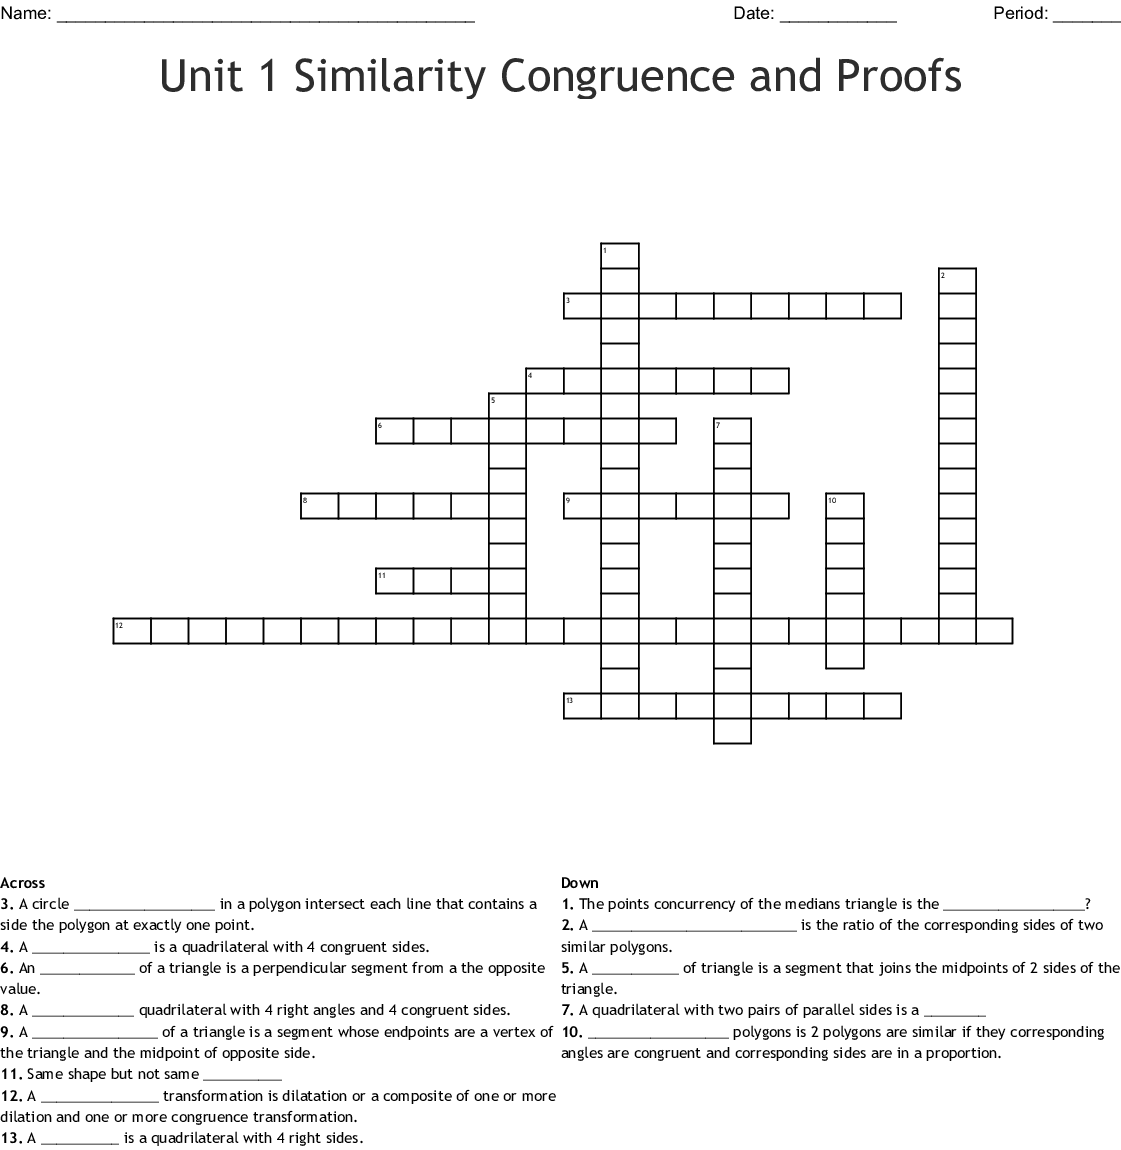 Similarity Congruence And Proofs